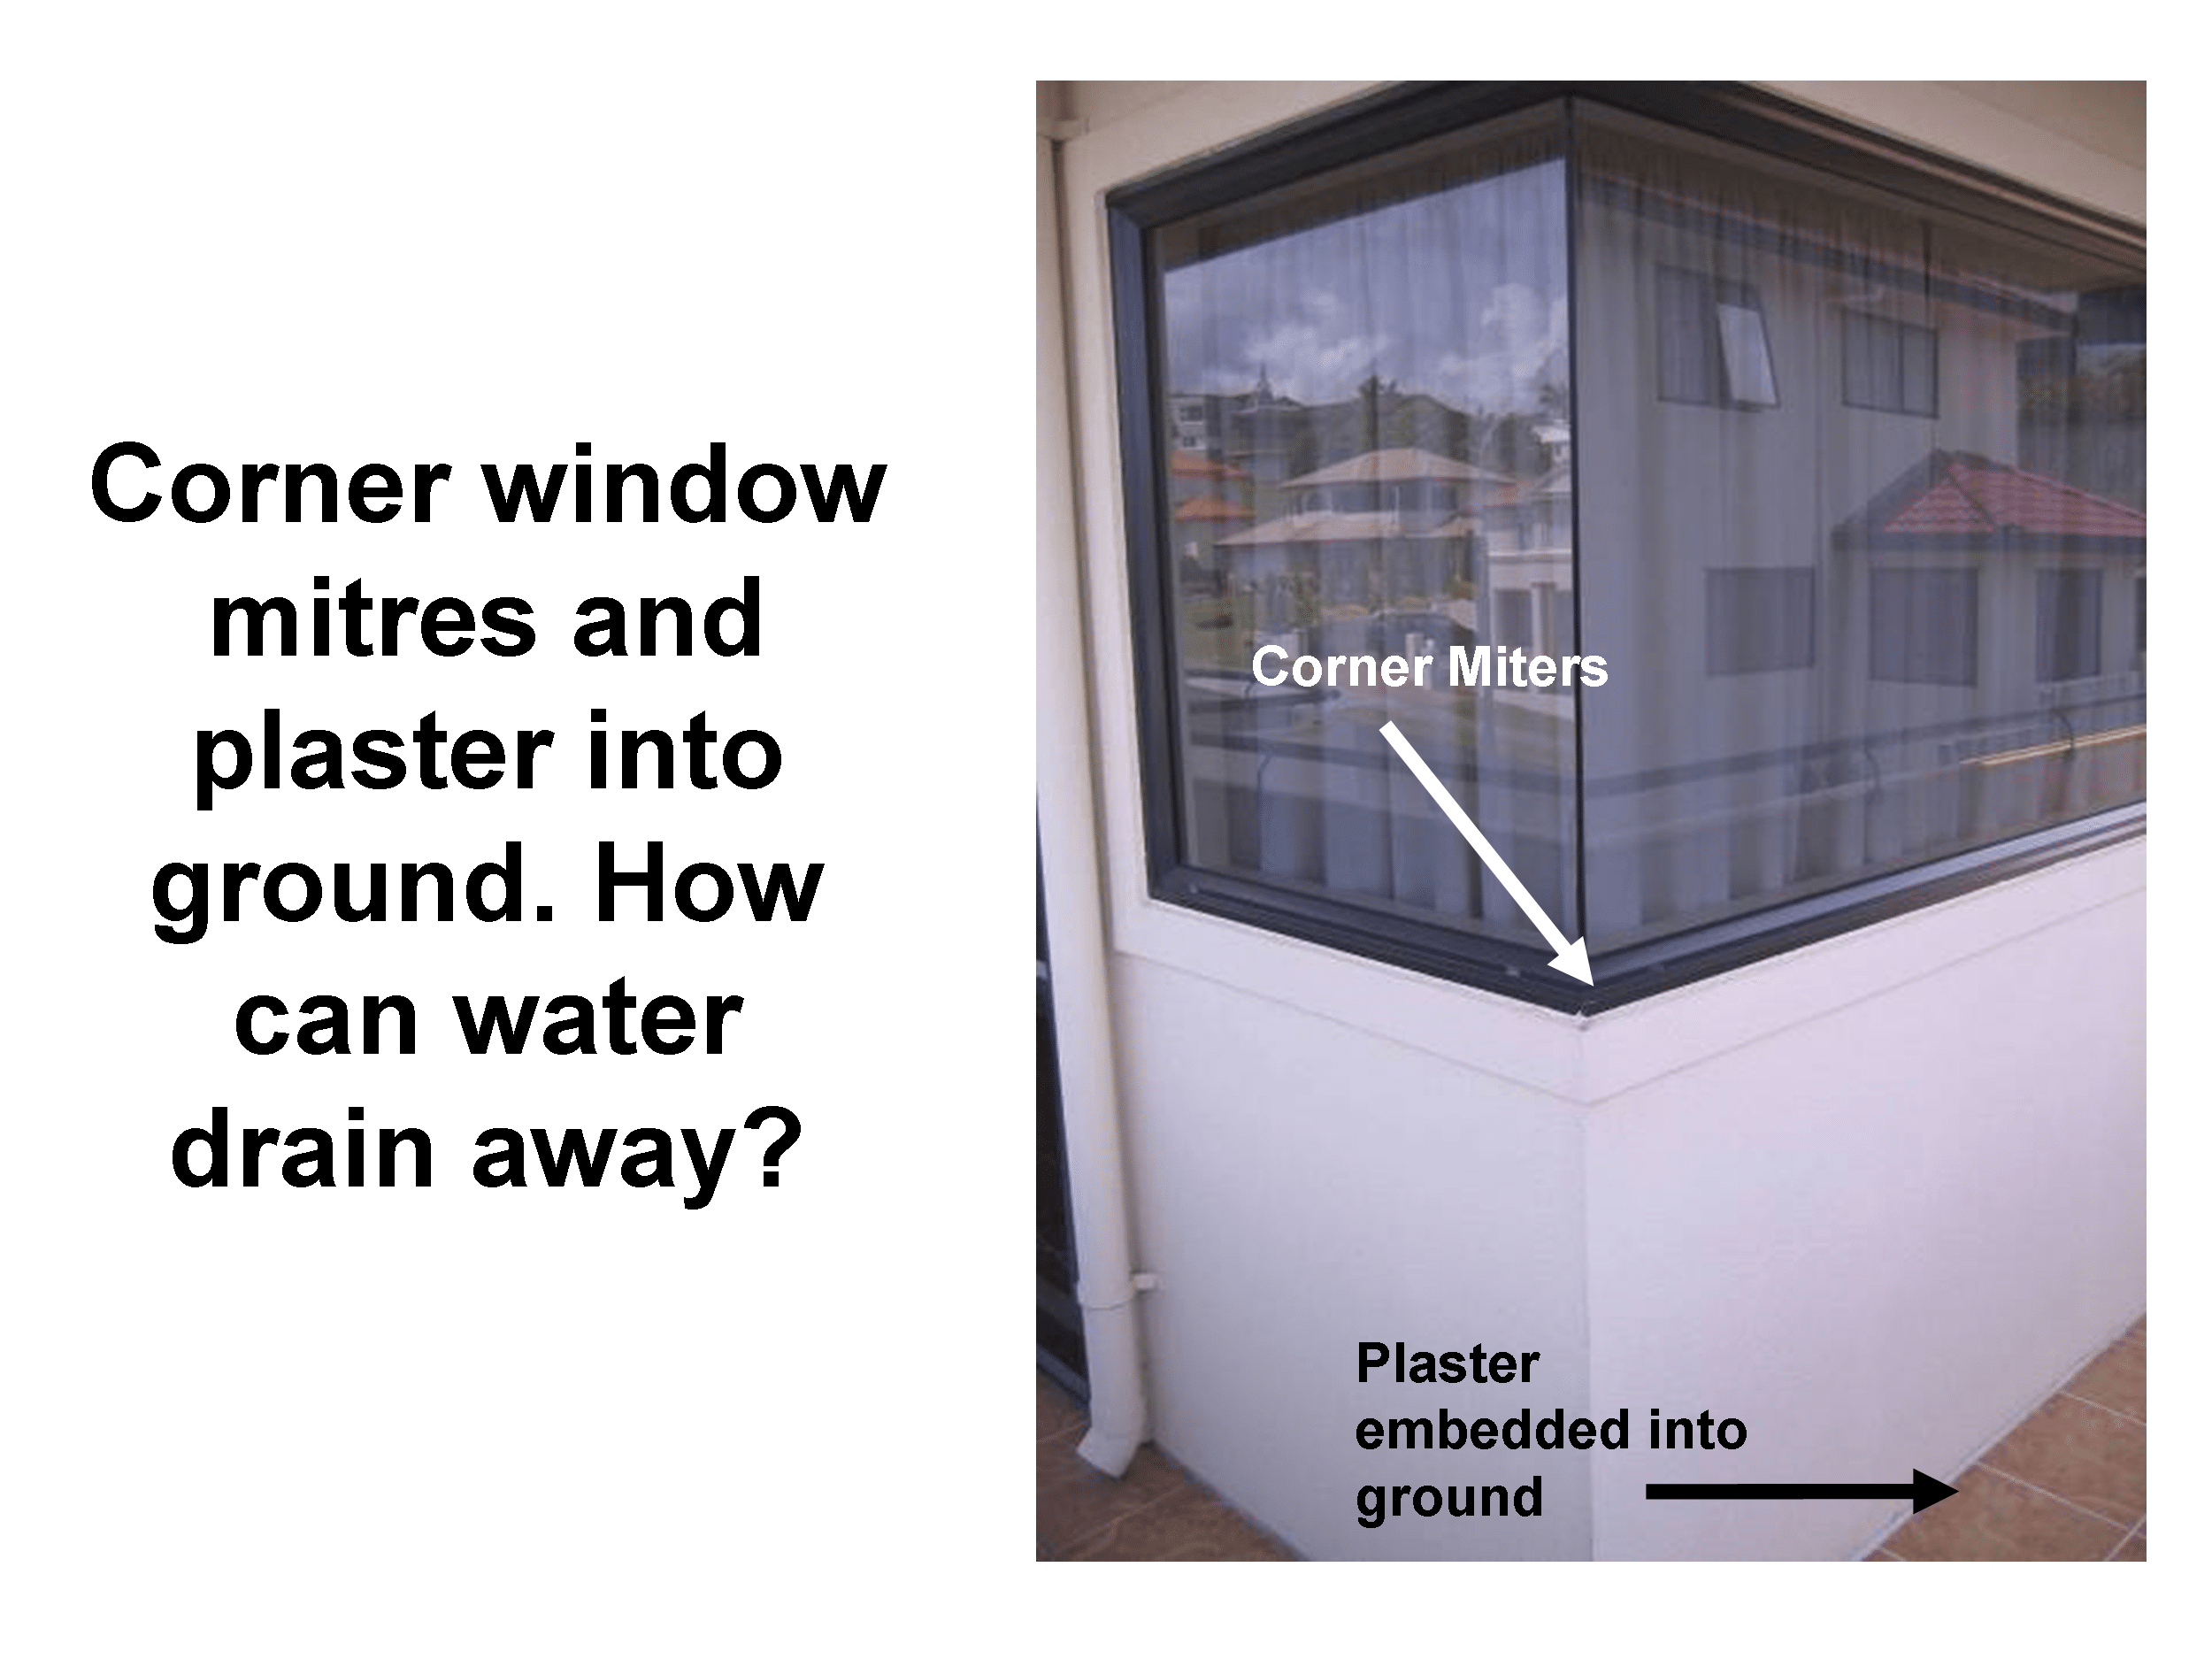 Plaster home cladding buried in the ground and corner windows are frequent causes of leaks in houses with monolithic cladding